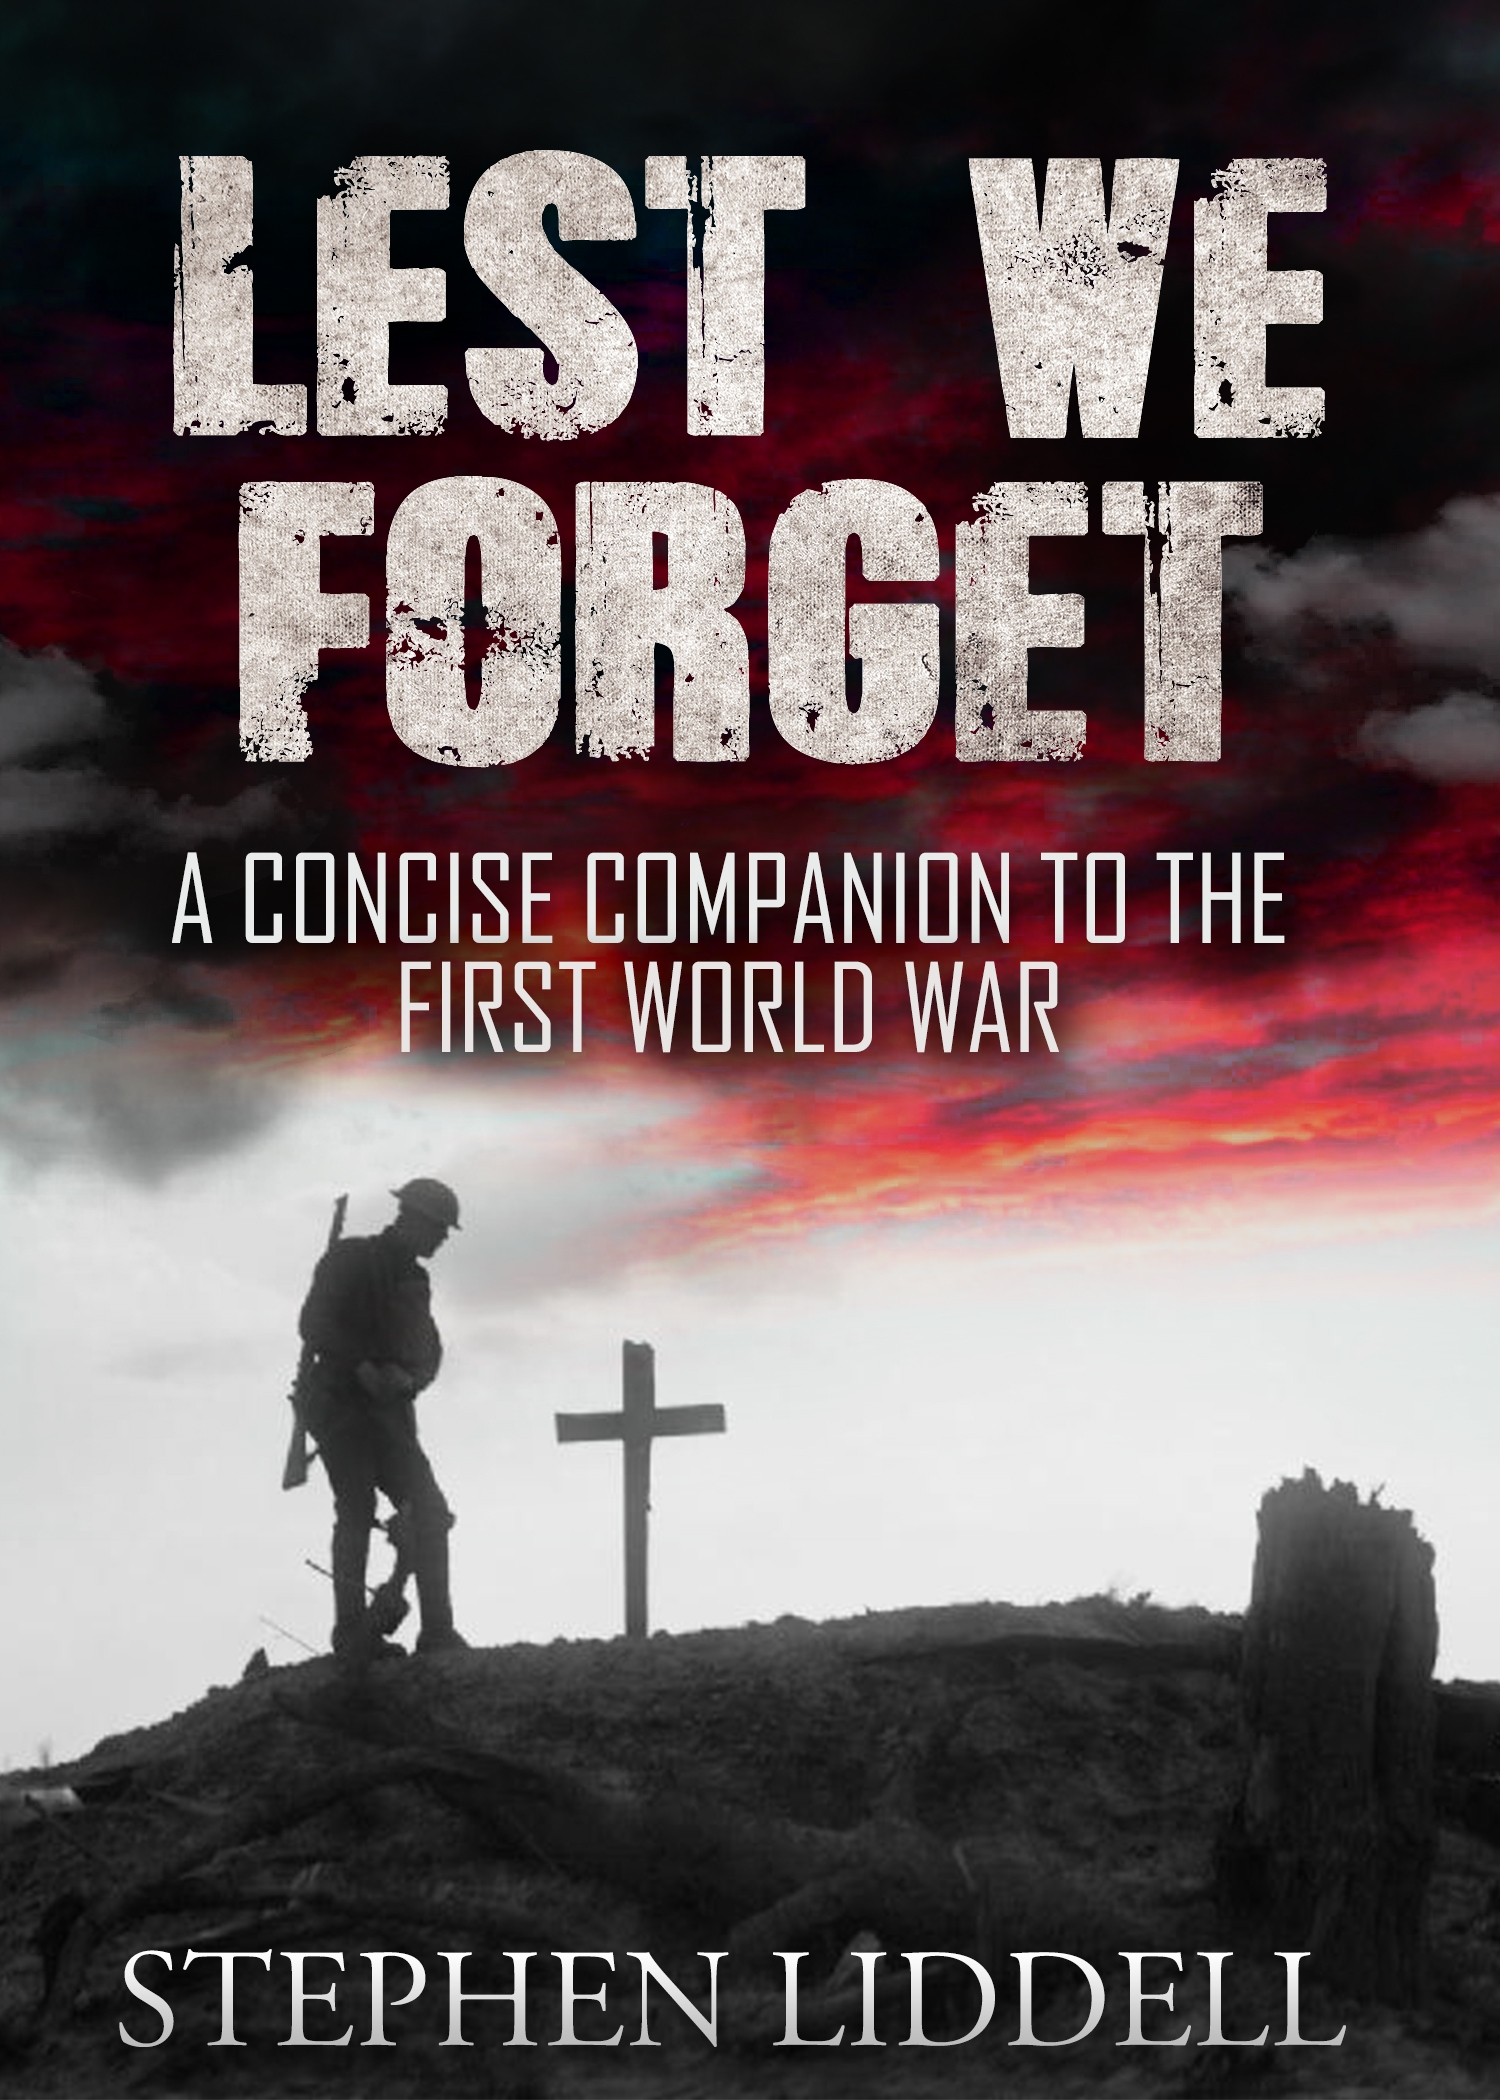 Lest We Forget: A Concise History of WW1 | Stephen Liddell